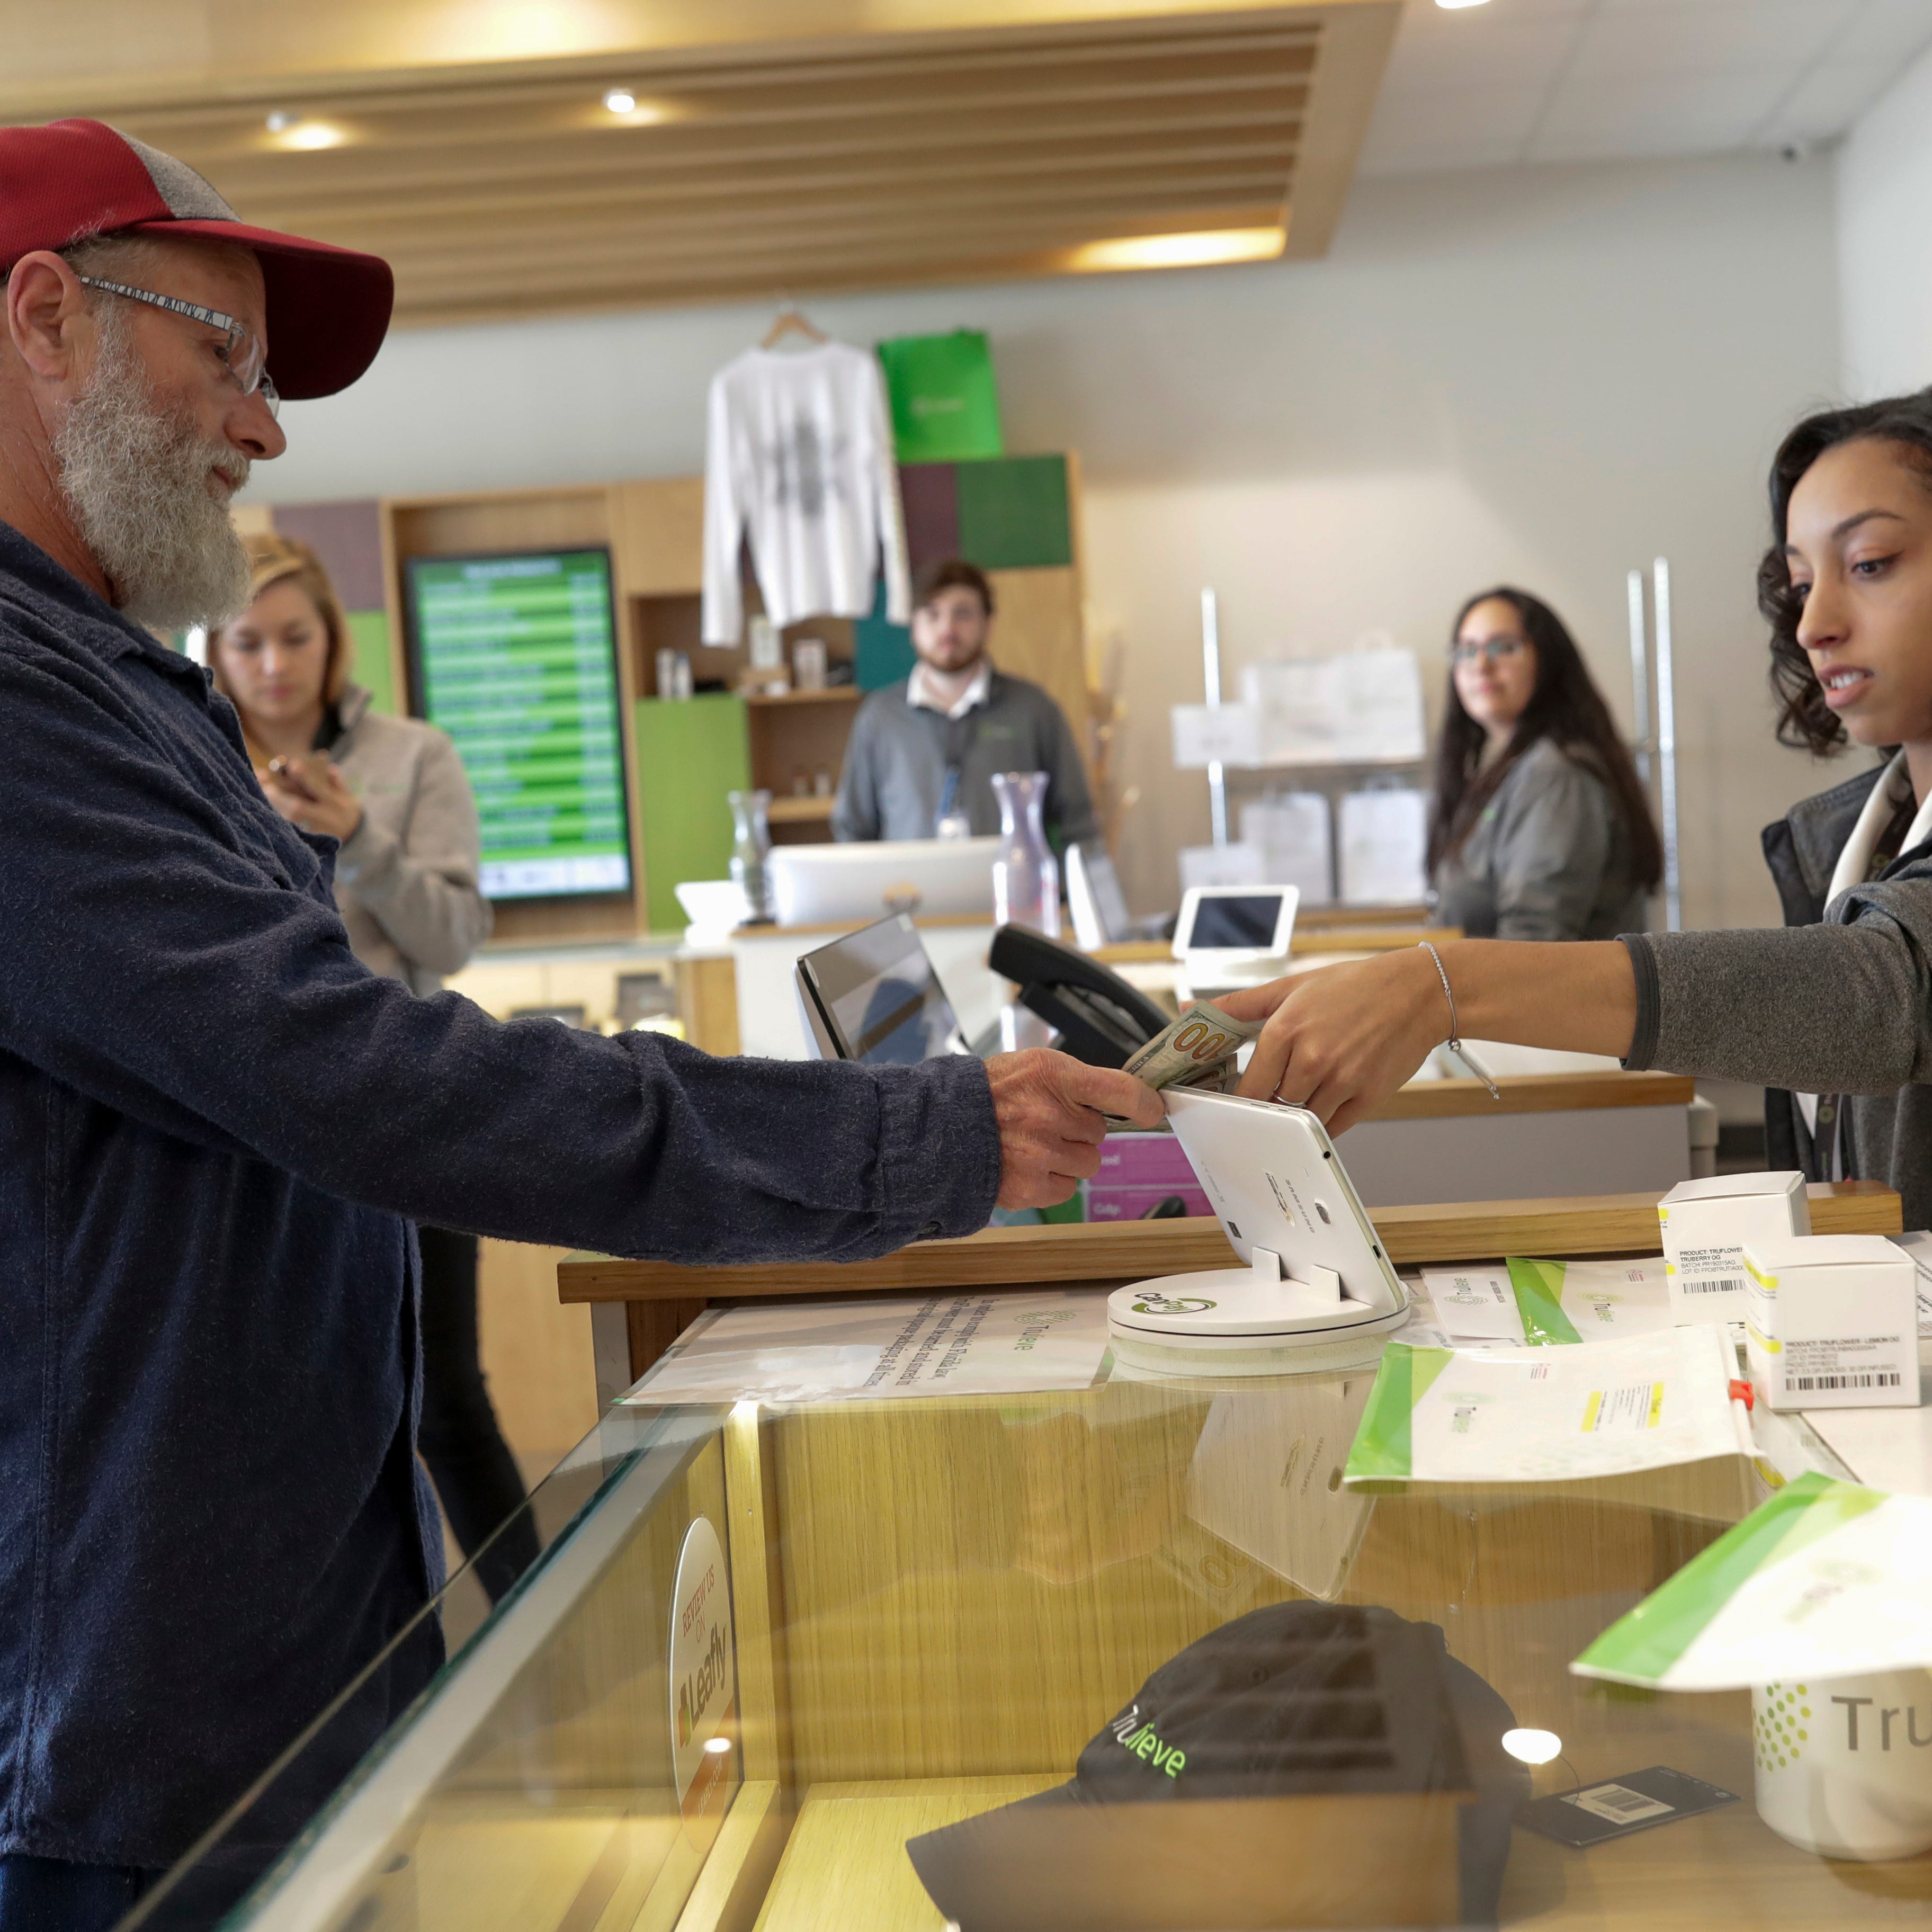 Fired up: Trulieve Tallahassee dispensary first to sell smokable medical marijuana in Florida